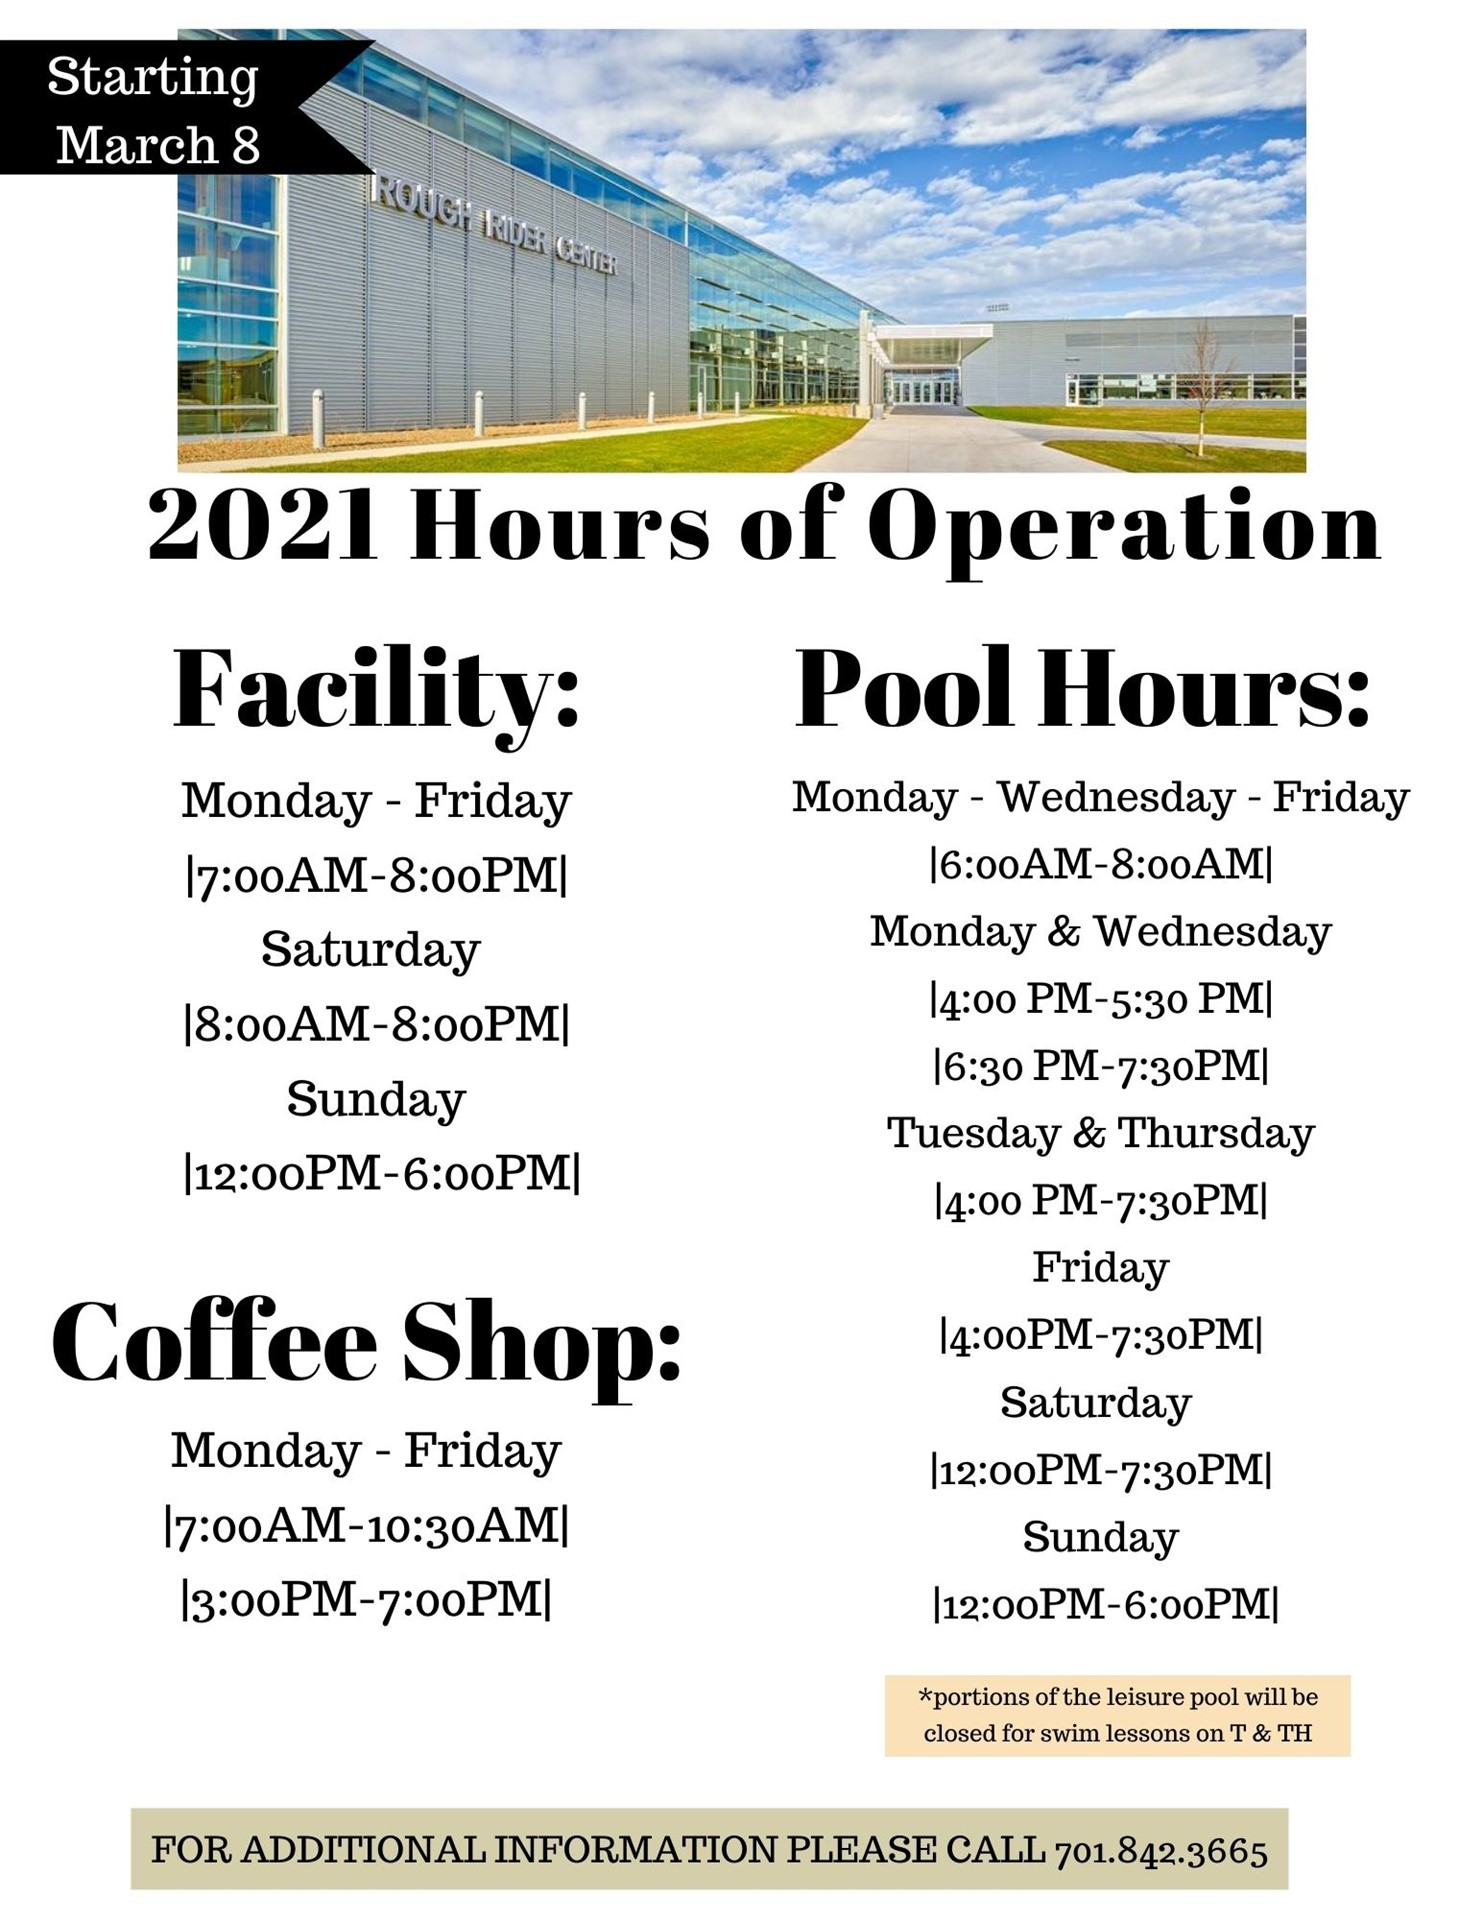 RRC Facility Hours: Starting March 8th